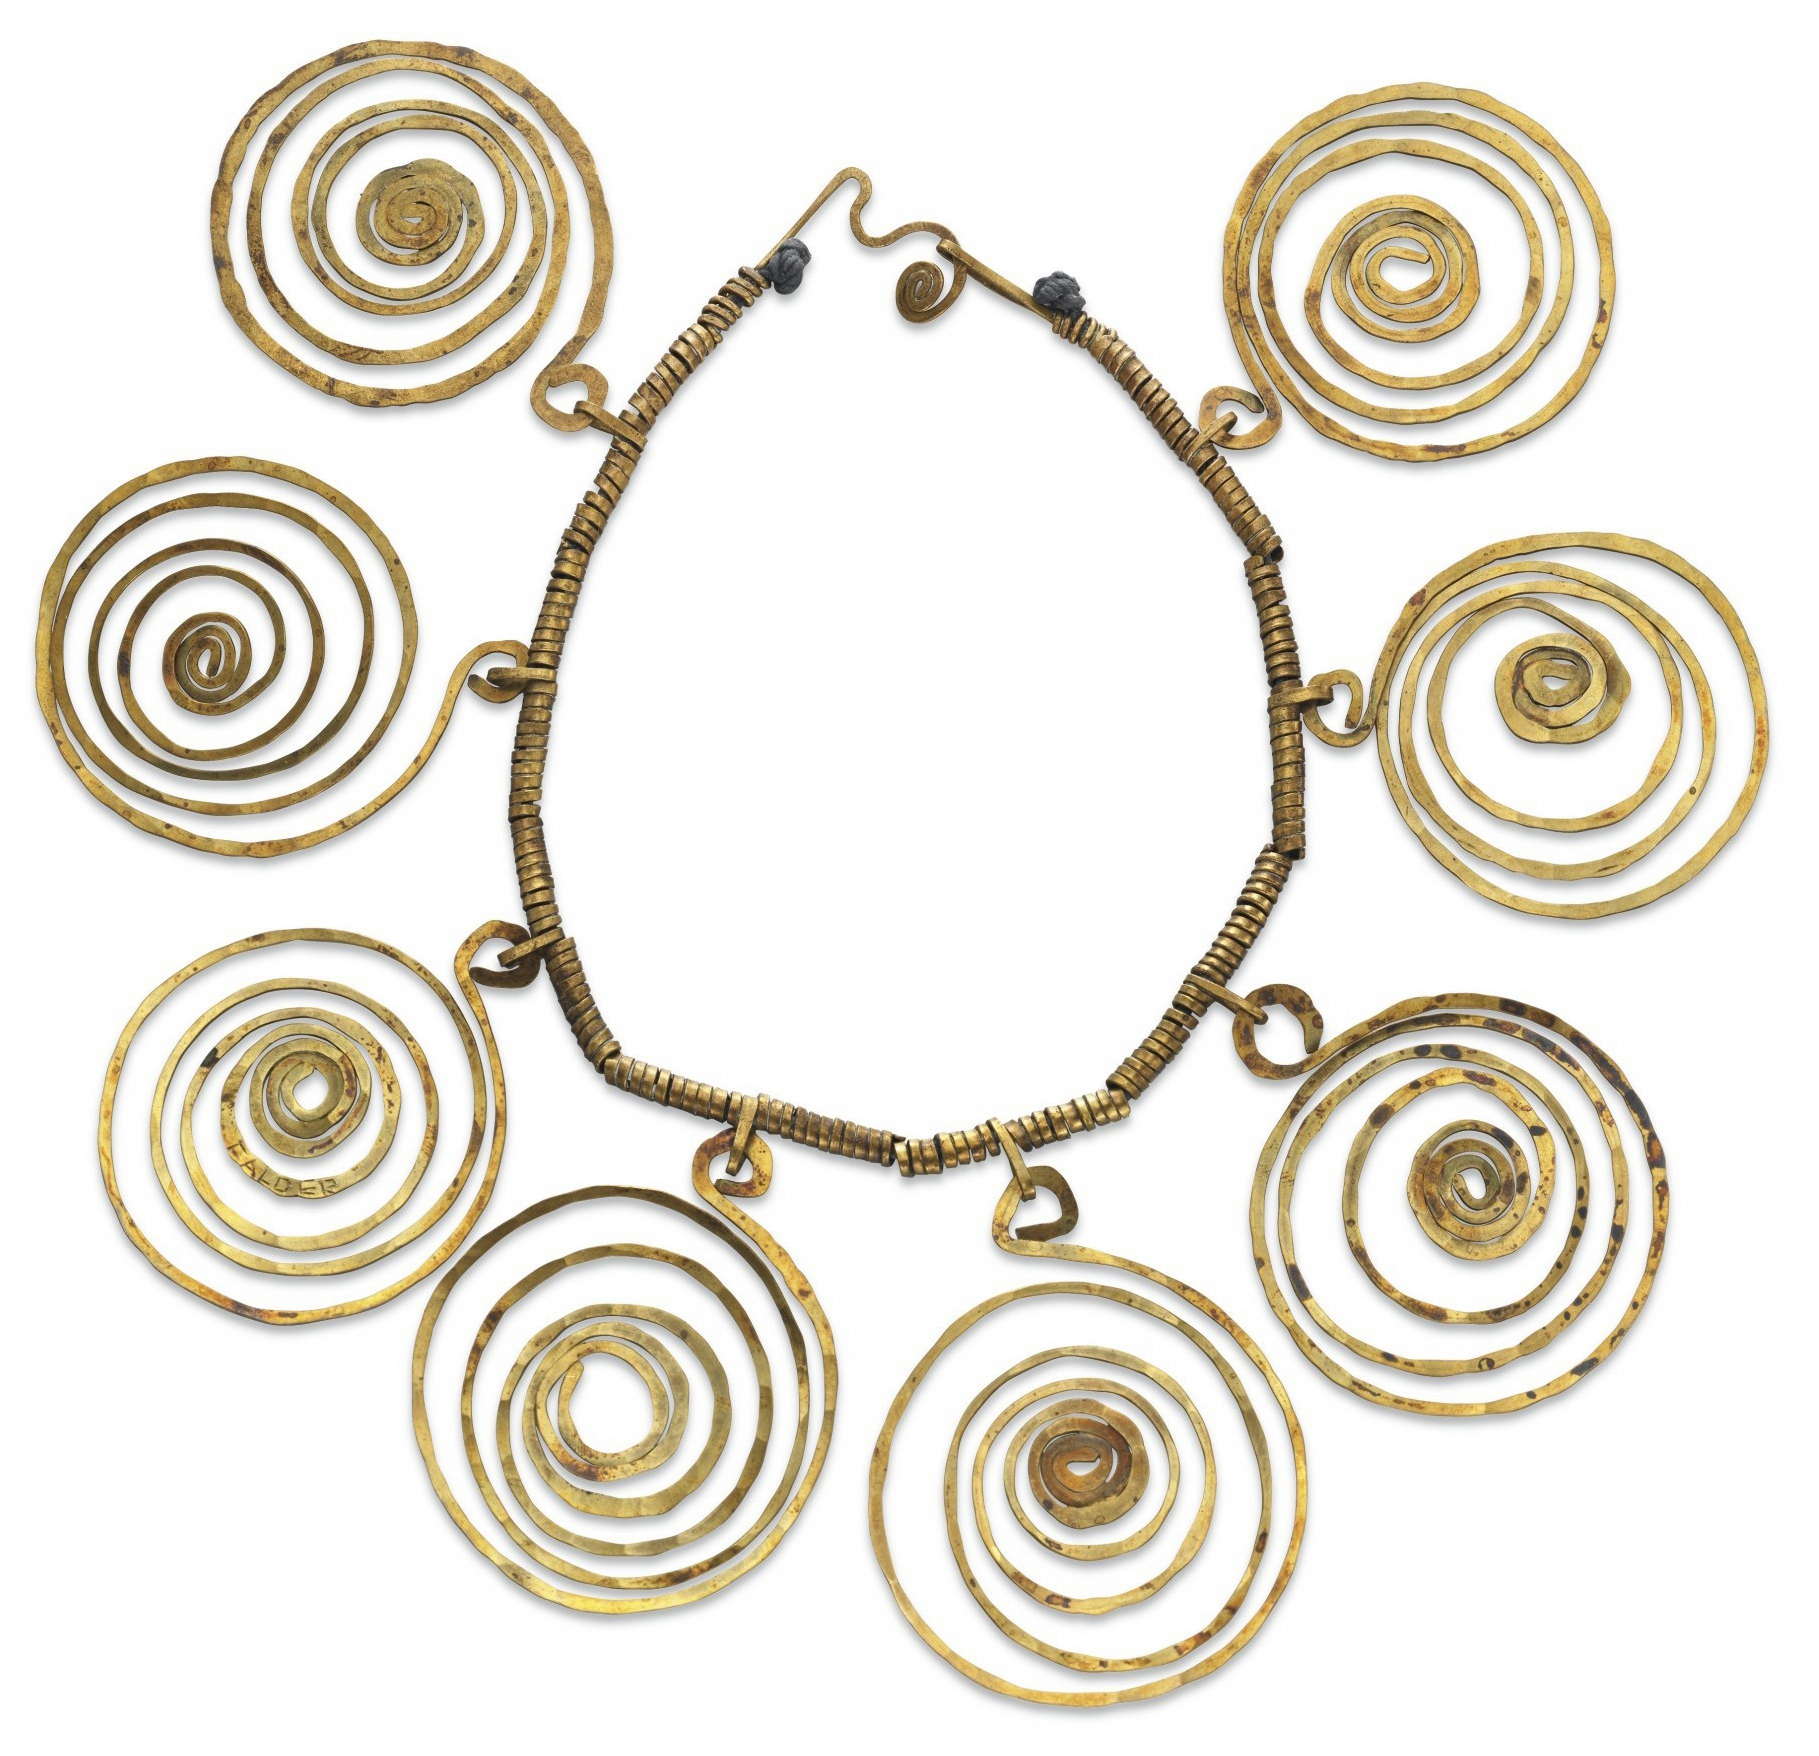 Alexander Calder - Necklace. Gold. Photo from http://thejewelryloupe.com